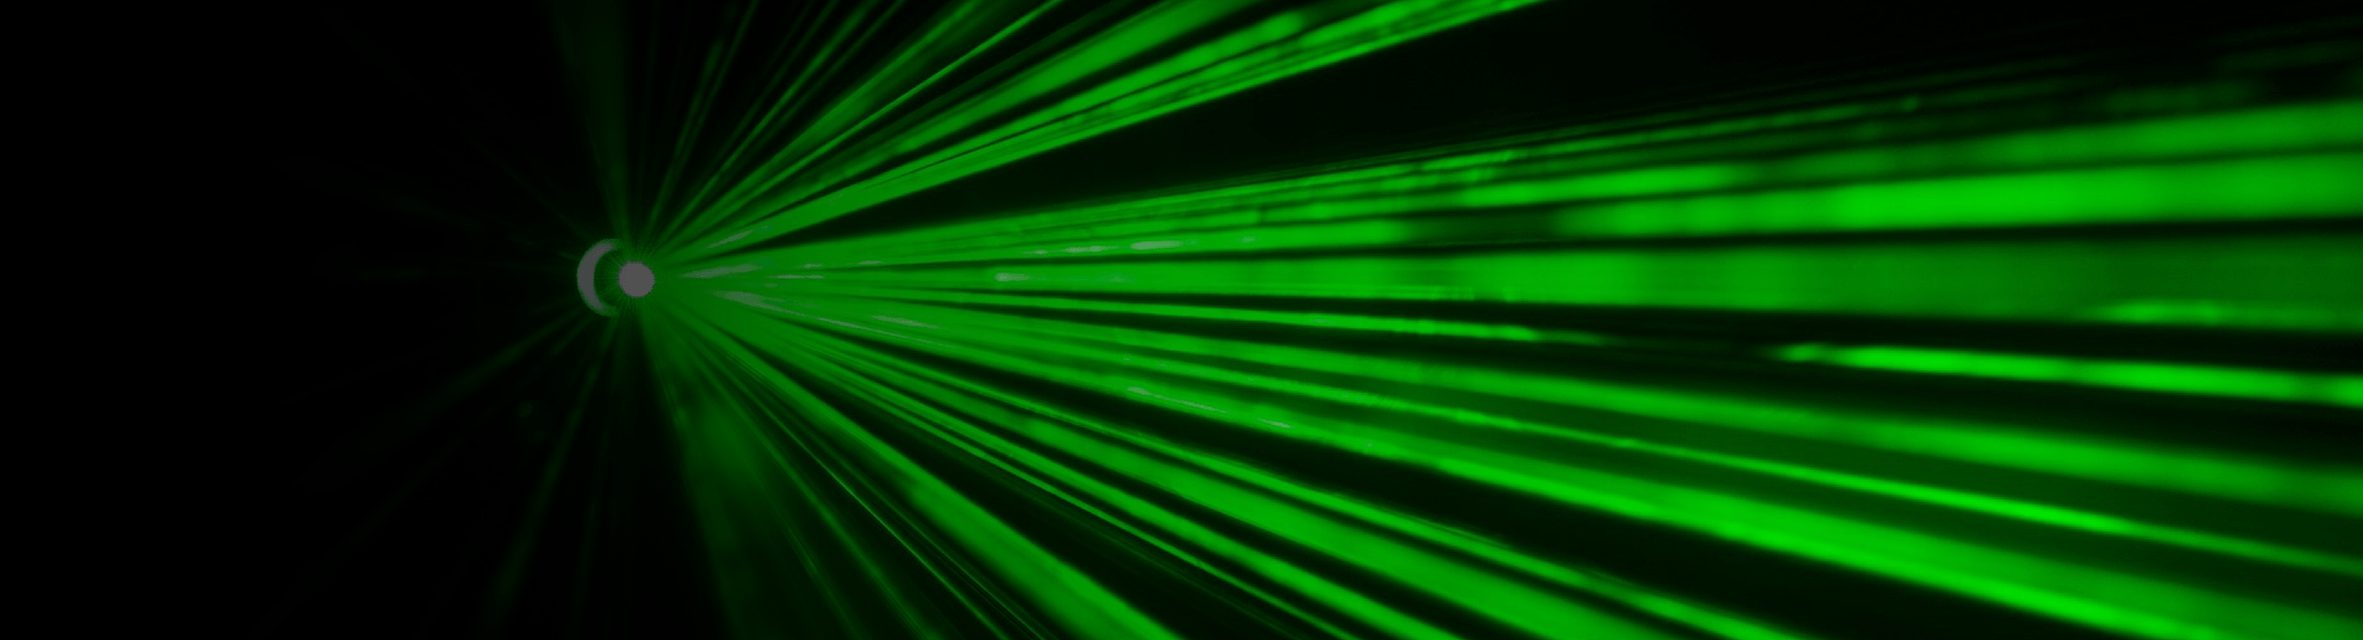 Laser Safety Standards & Capabilities